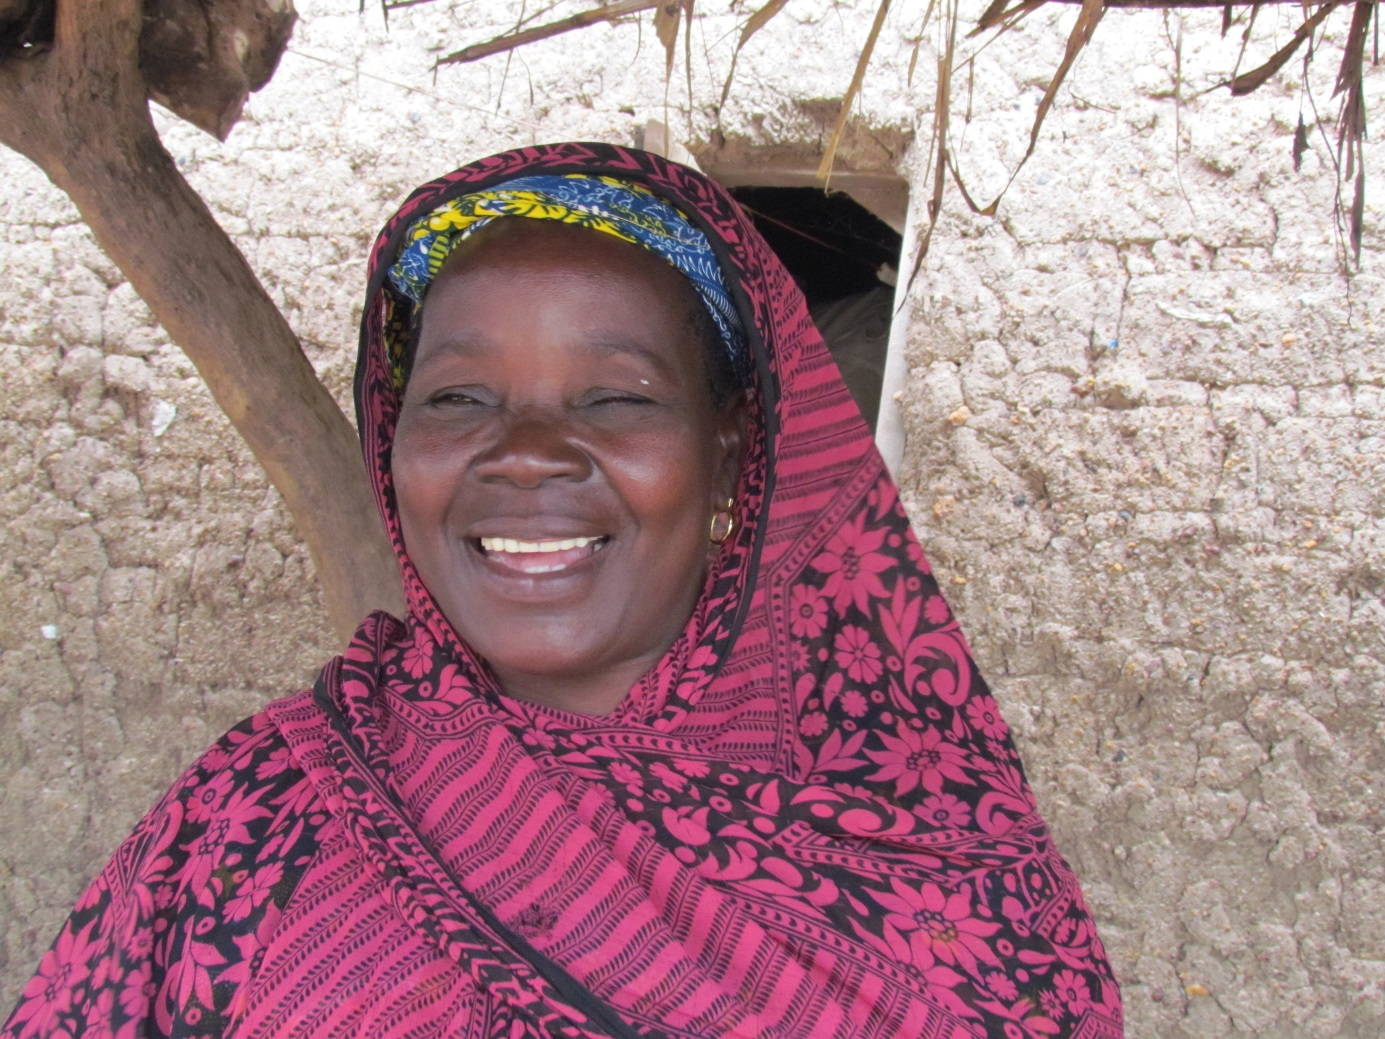 A mother who knows her children will now be able to attend school is a happy mother!